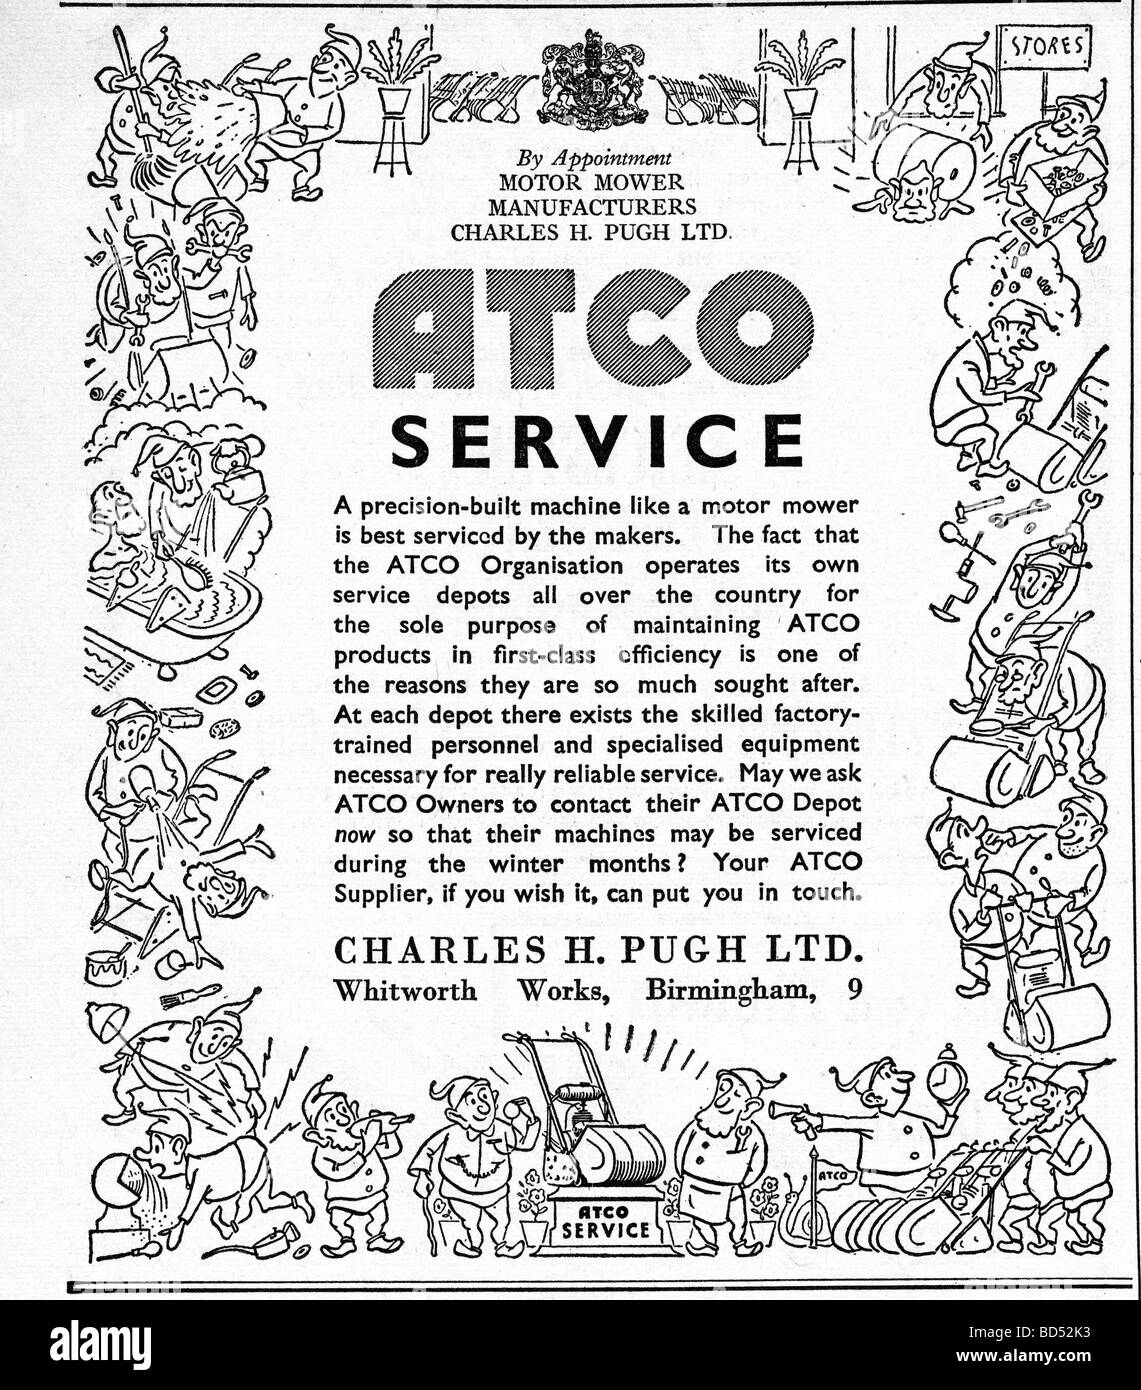 Atco lawnmower advert from 1951 - Stock Image